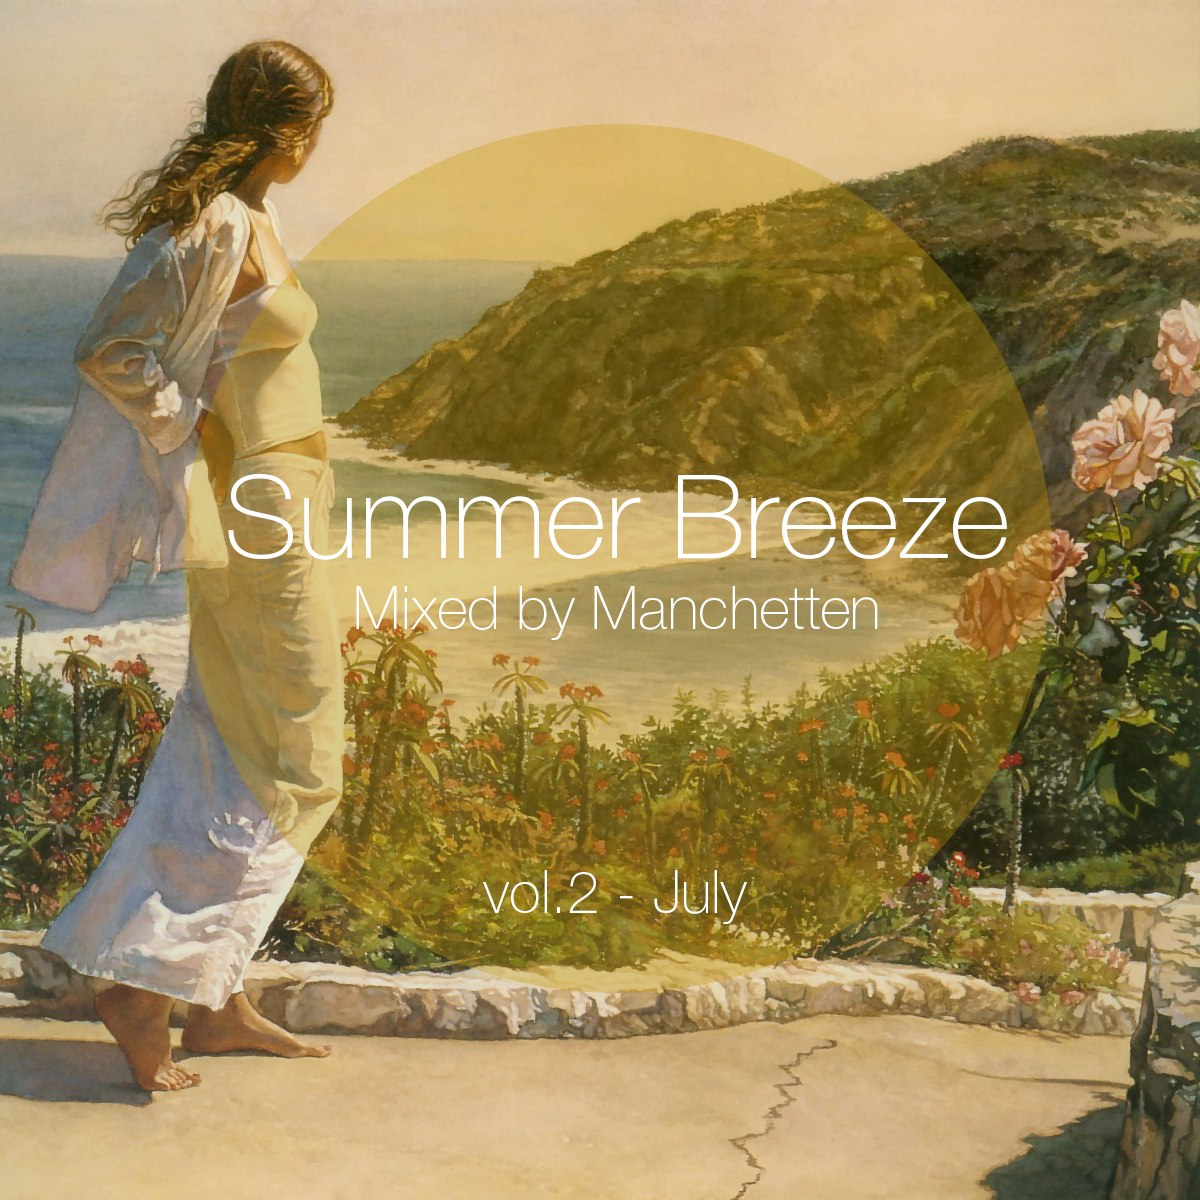 Summer Breeze vol. 2